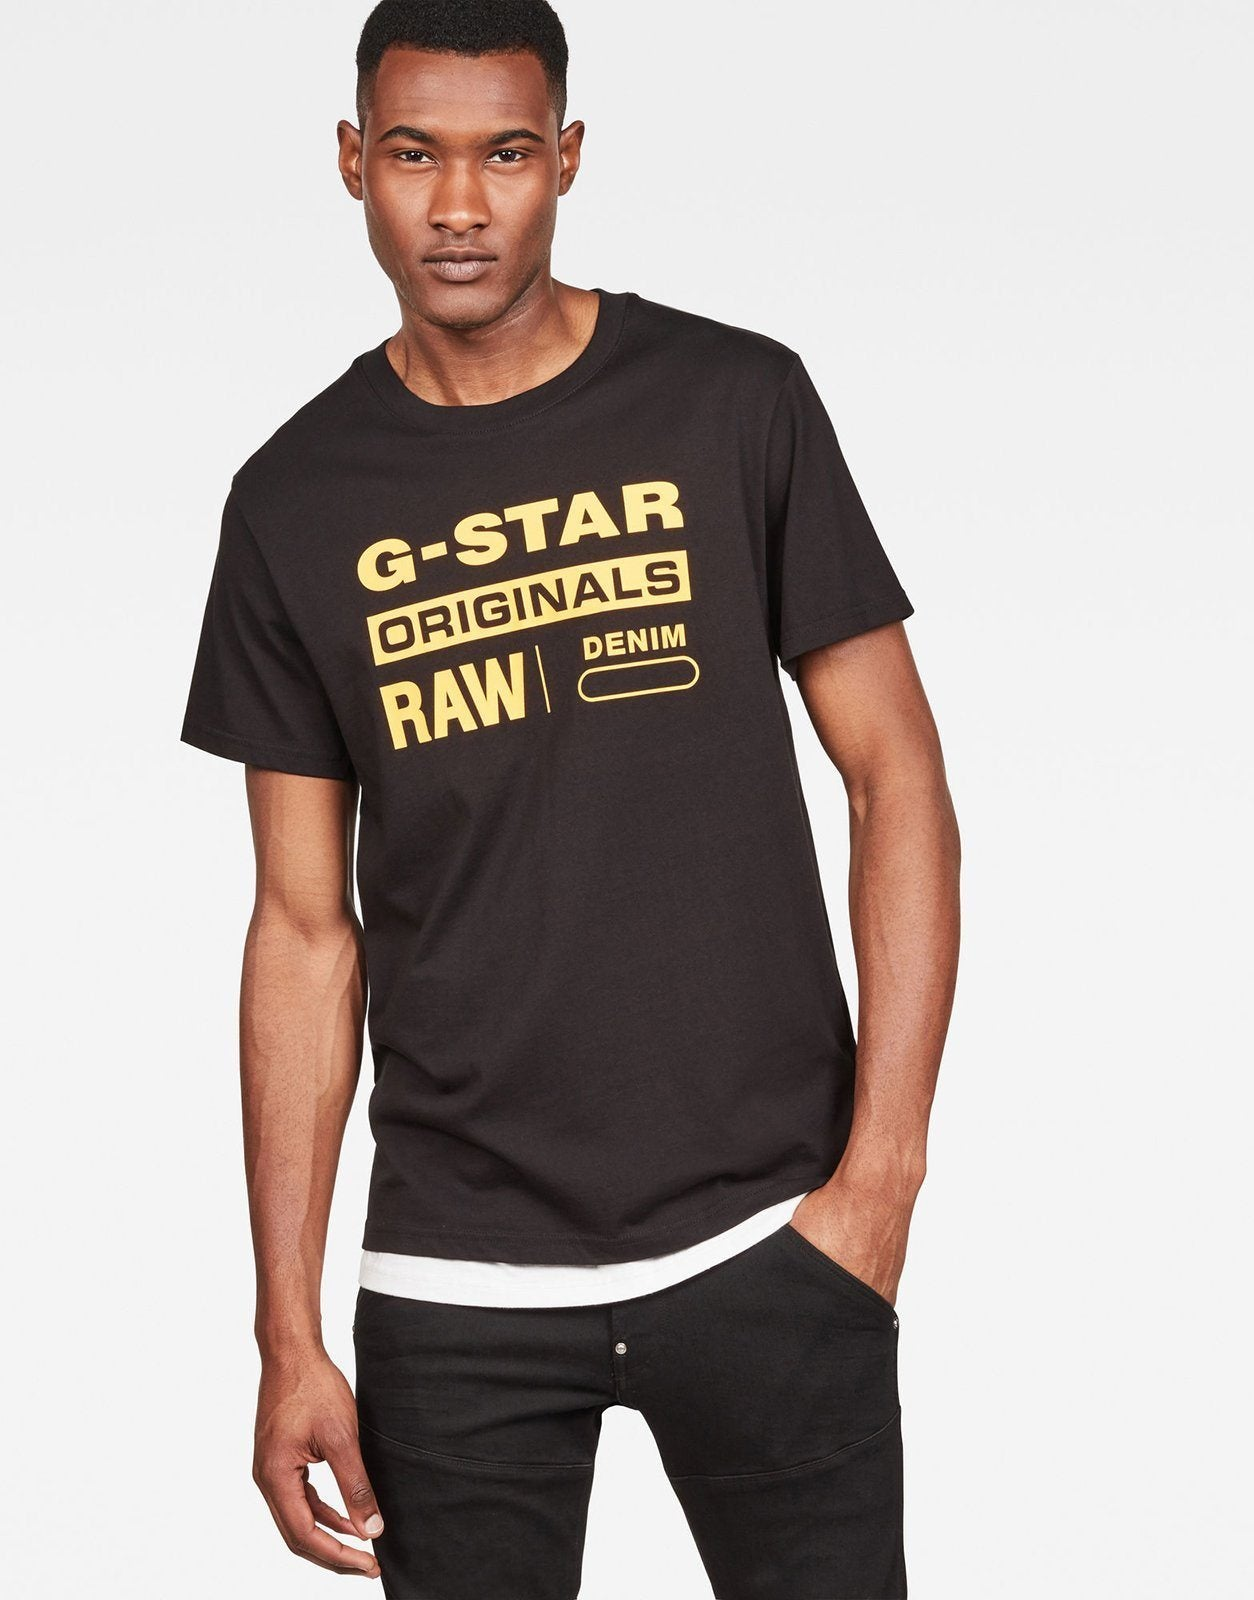 reputable site ed058 a31cd G-Star RAW Graphic 8 T-Shirt